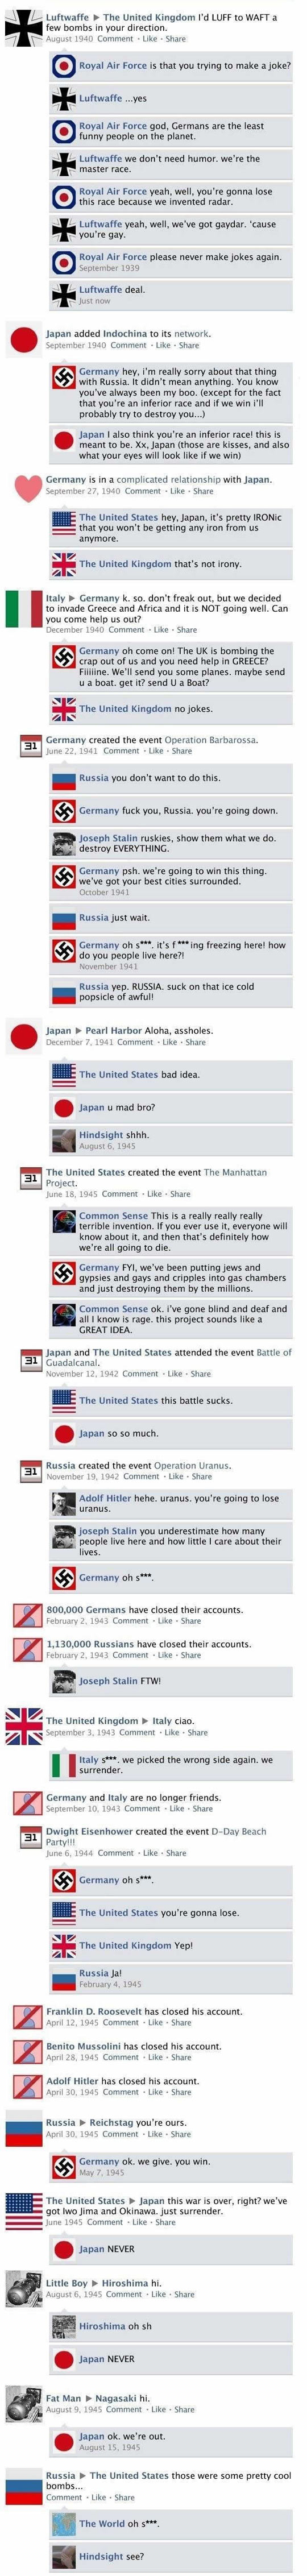 funny-history-war-Facebook-Germany-Russia